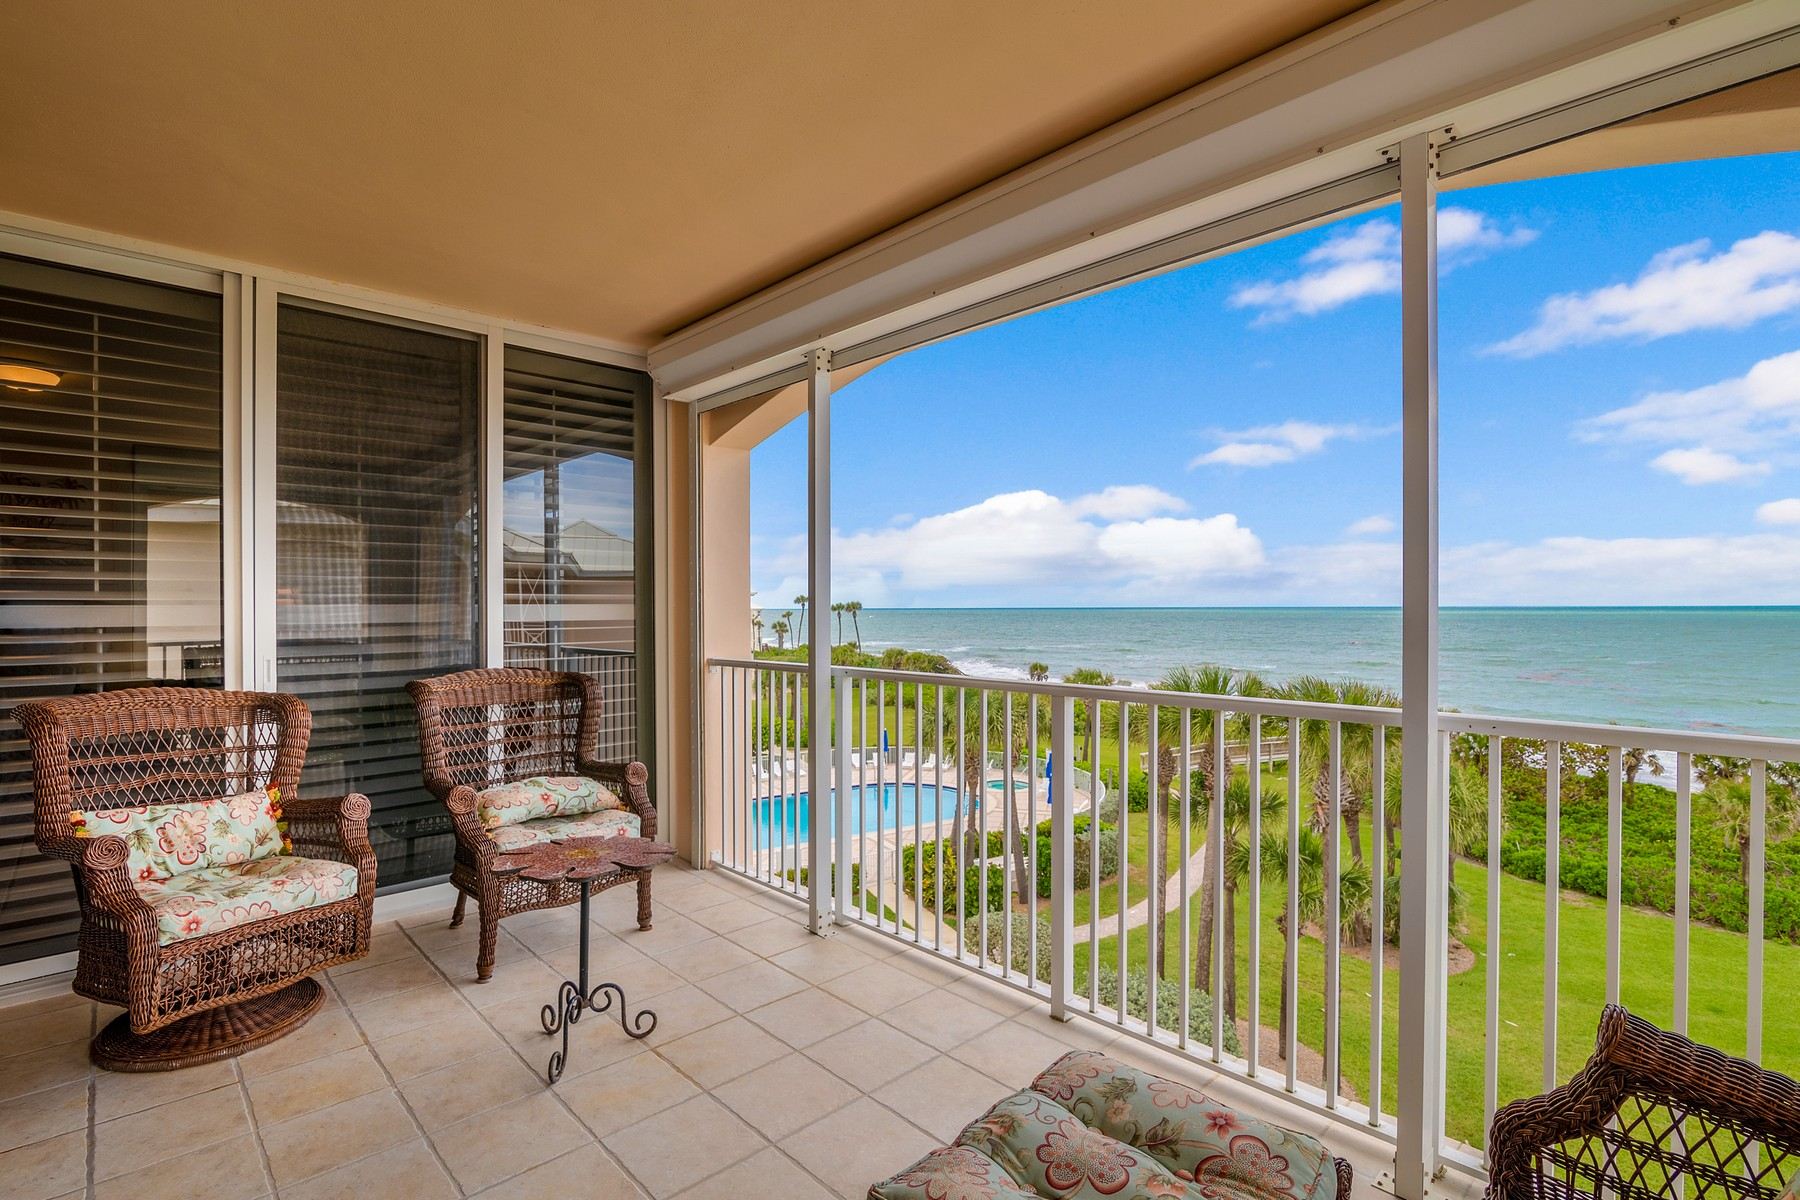 Condominiums для того Продажа на Top Floor Oceanfront Condo 8866 N Sea Oaks Way #212 Vero Beach, Флорида 32963 Соединенные Штаты